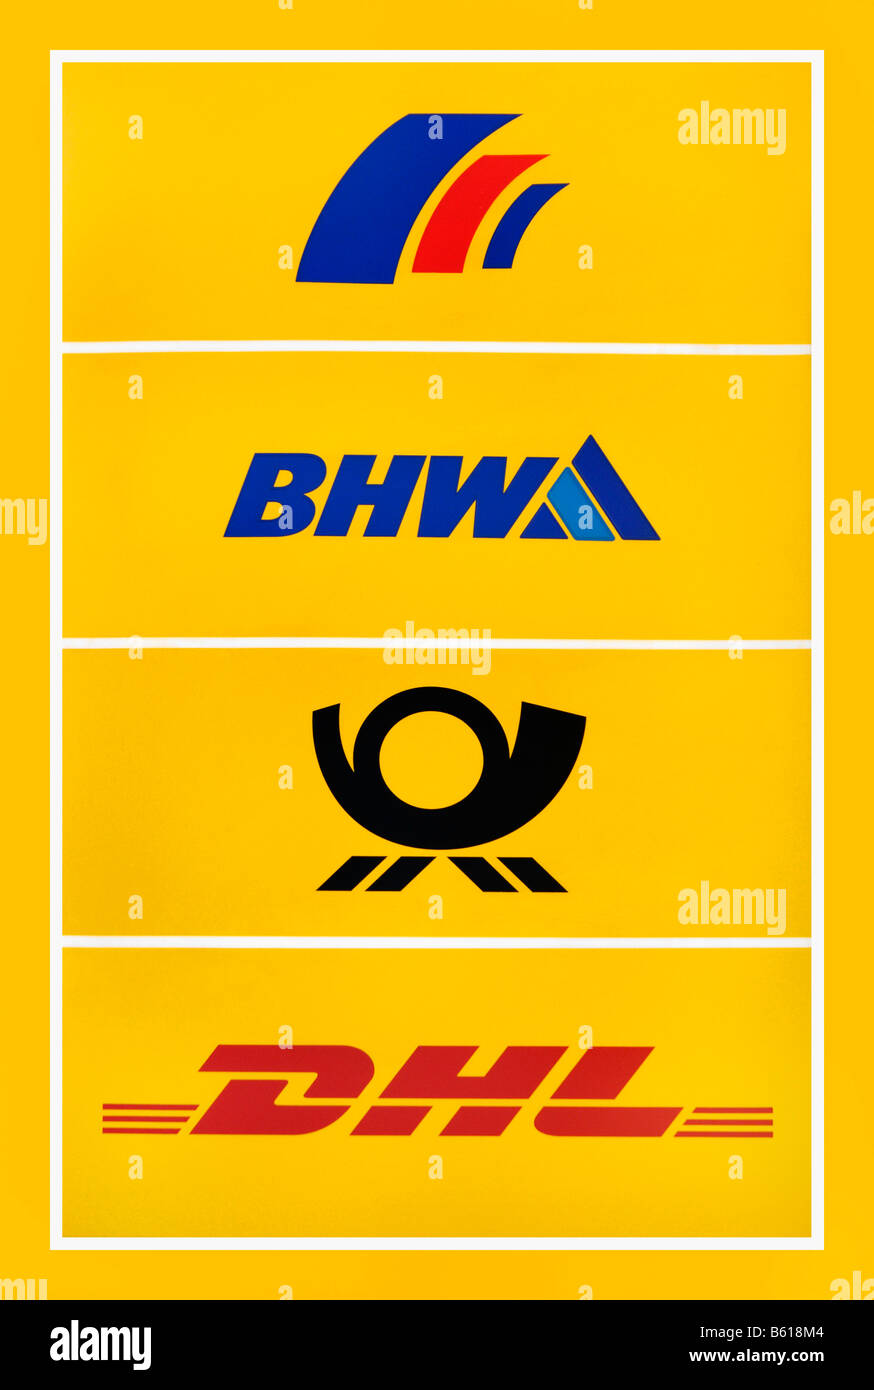 Deutsche Postgruppe, German mail, sign showing logos of Postbank, BHW, Post and DHL - Stock Image